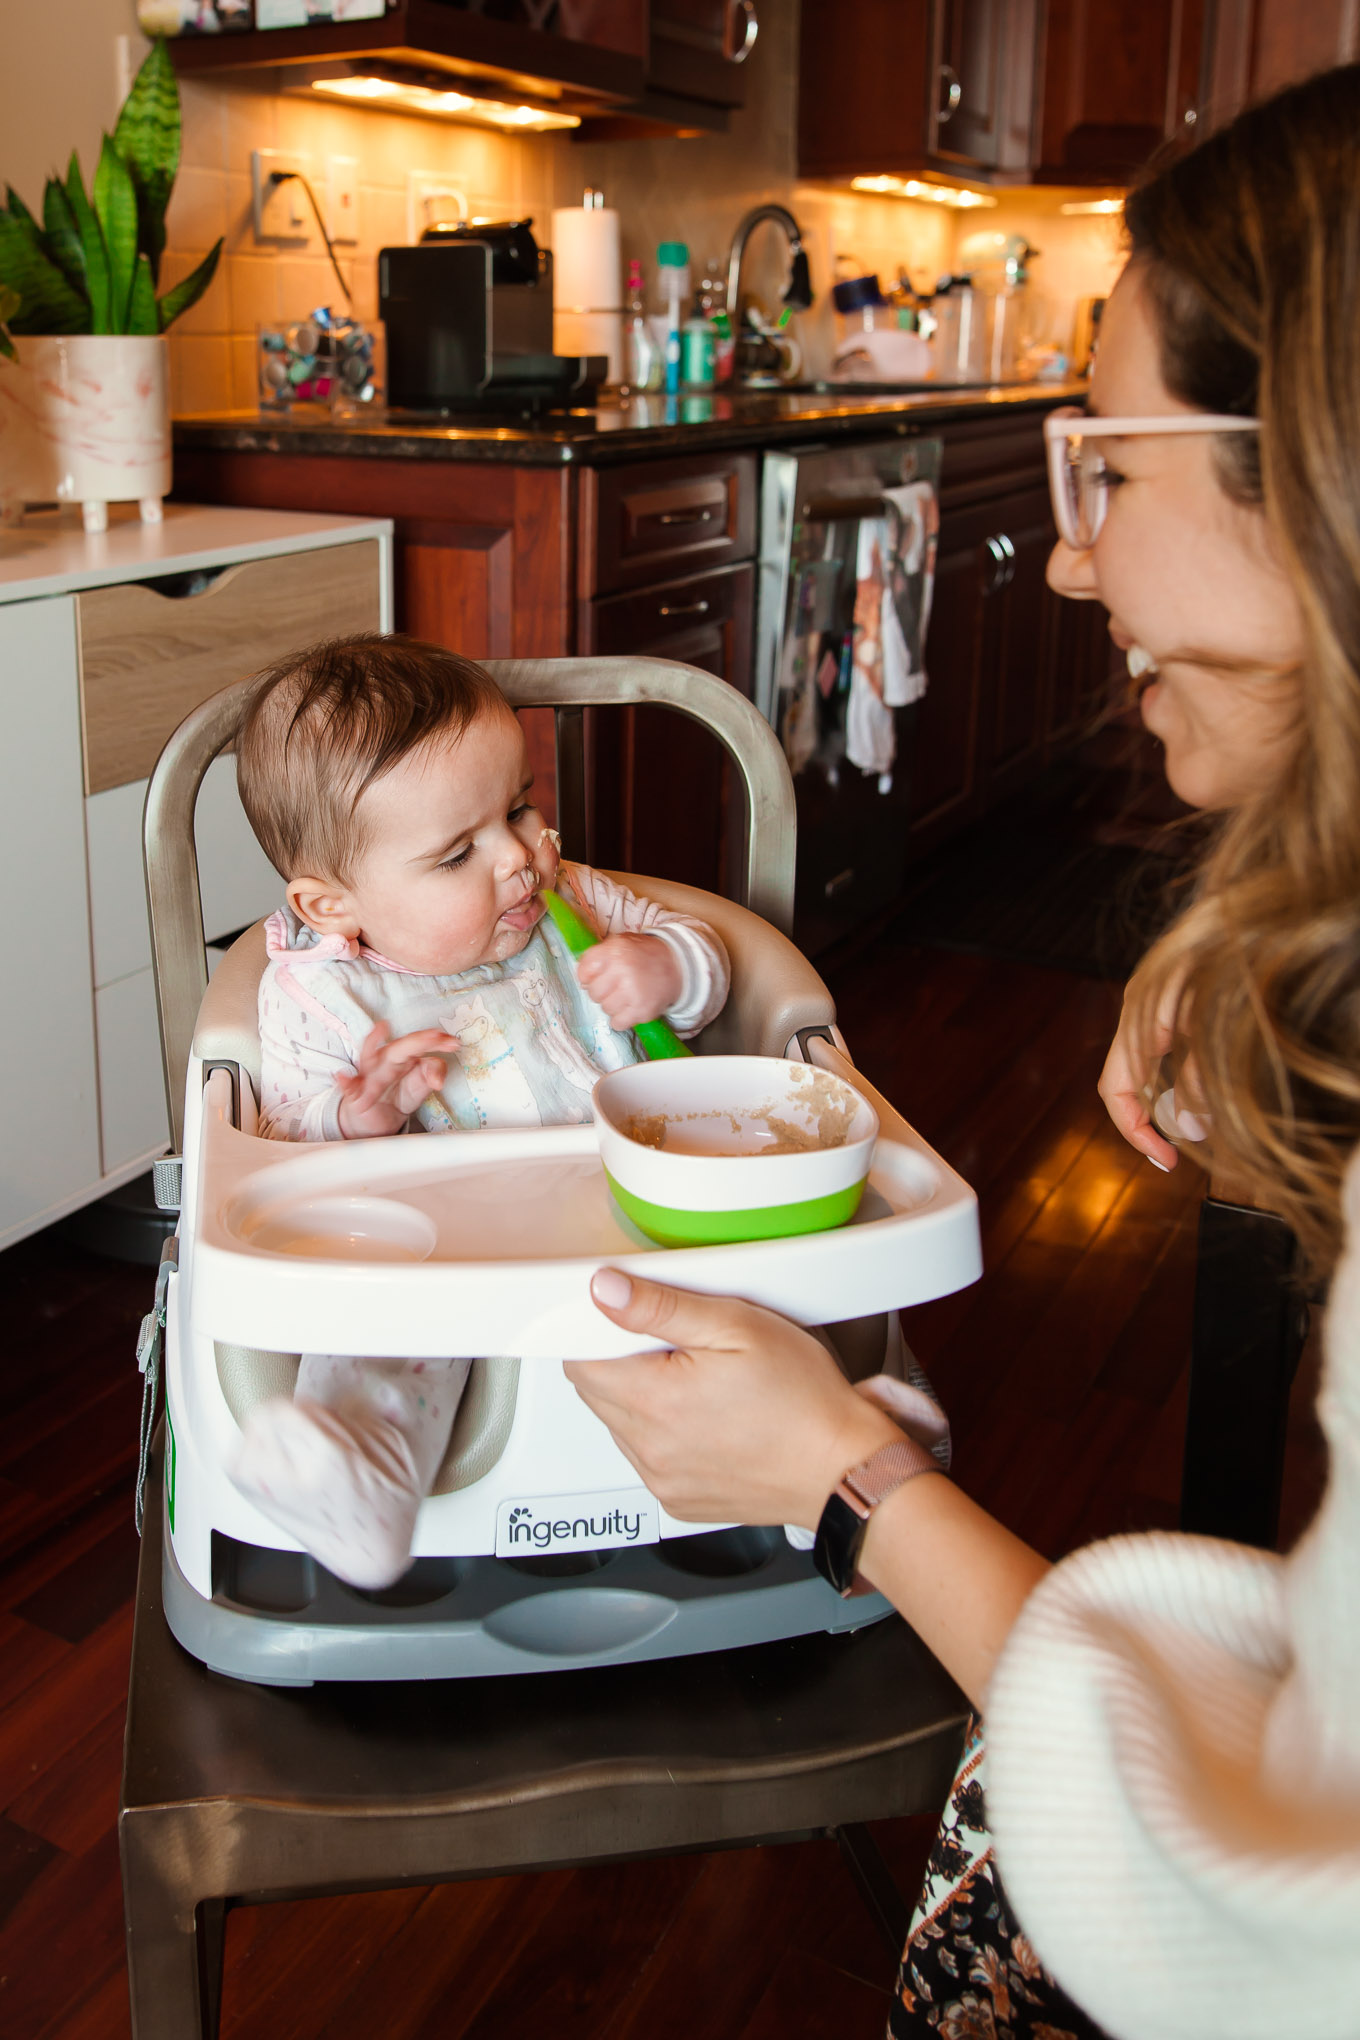 Ingenuity Baby Seat by popular Chicago mommy blog, Glass of Glam: image of a baby sitting in a Ingenuity baby seat and eating food.